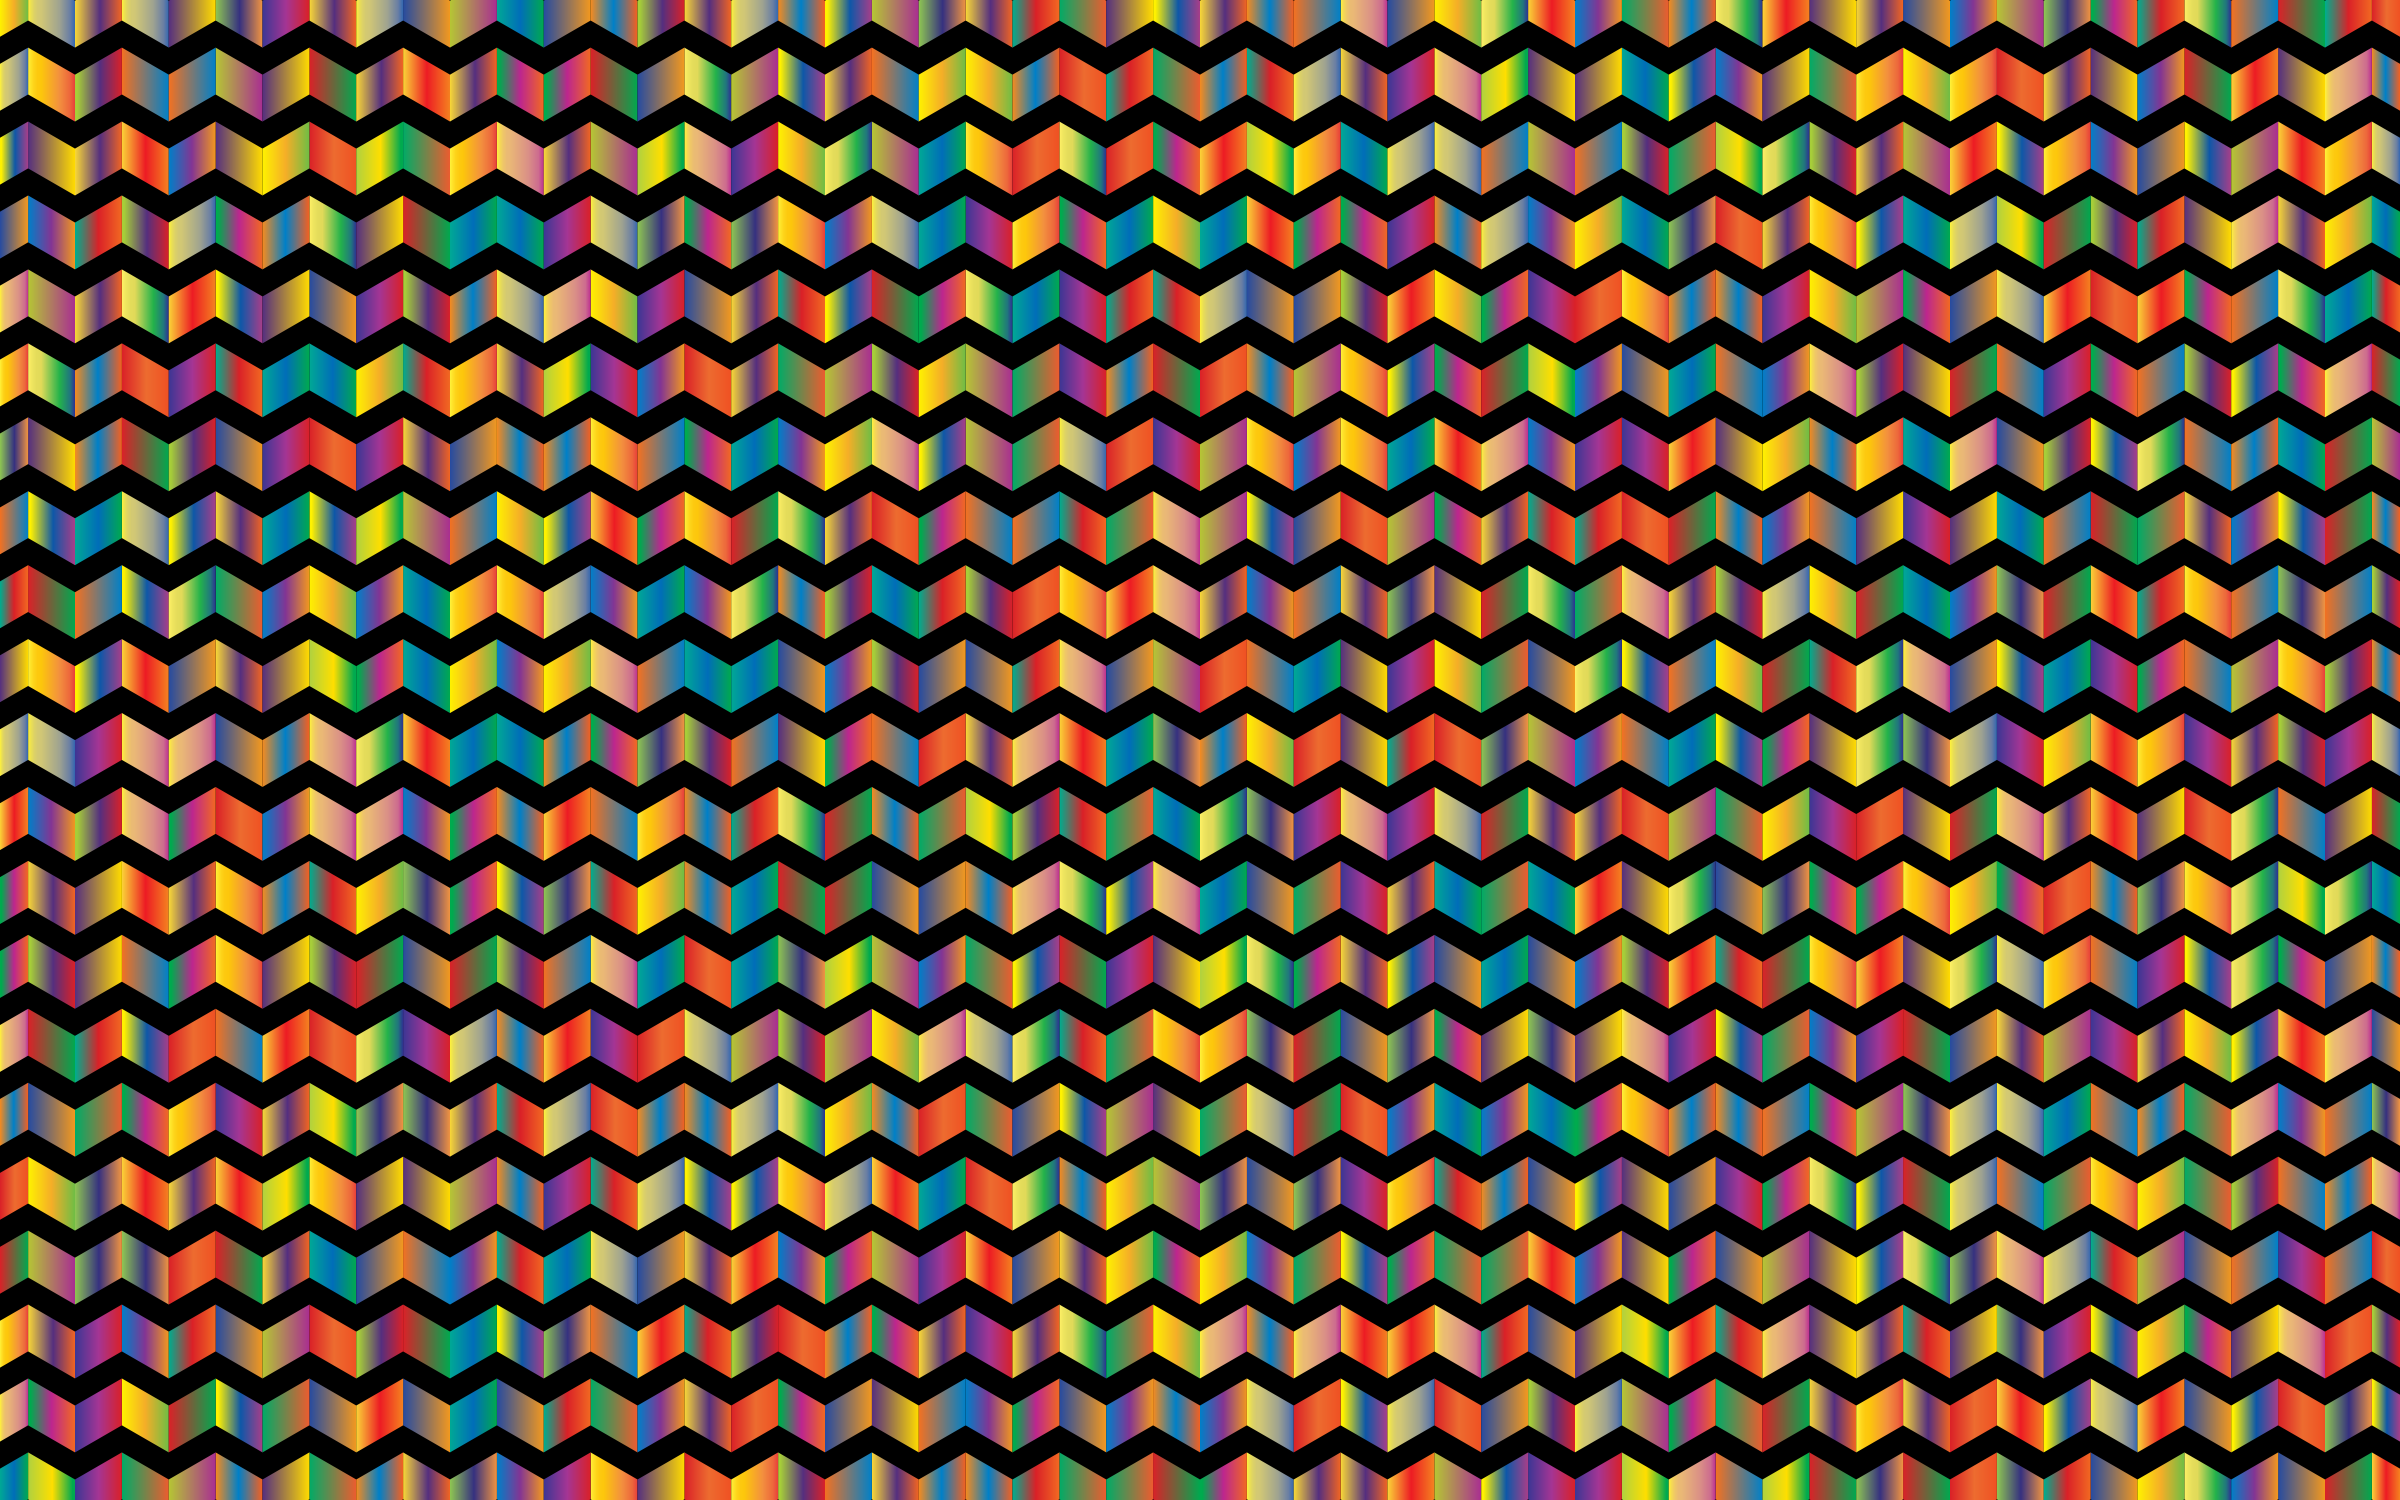 Prismatic Chevrons Pattern 4 With Background by GDJ